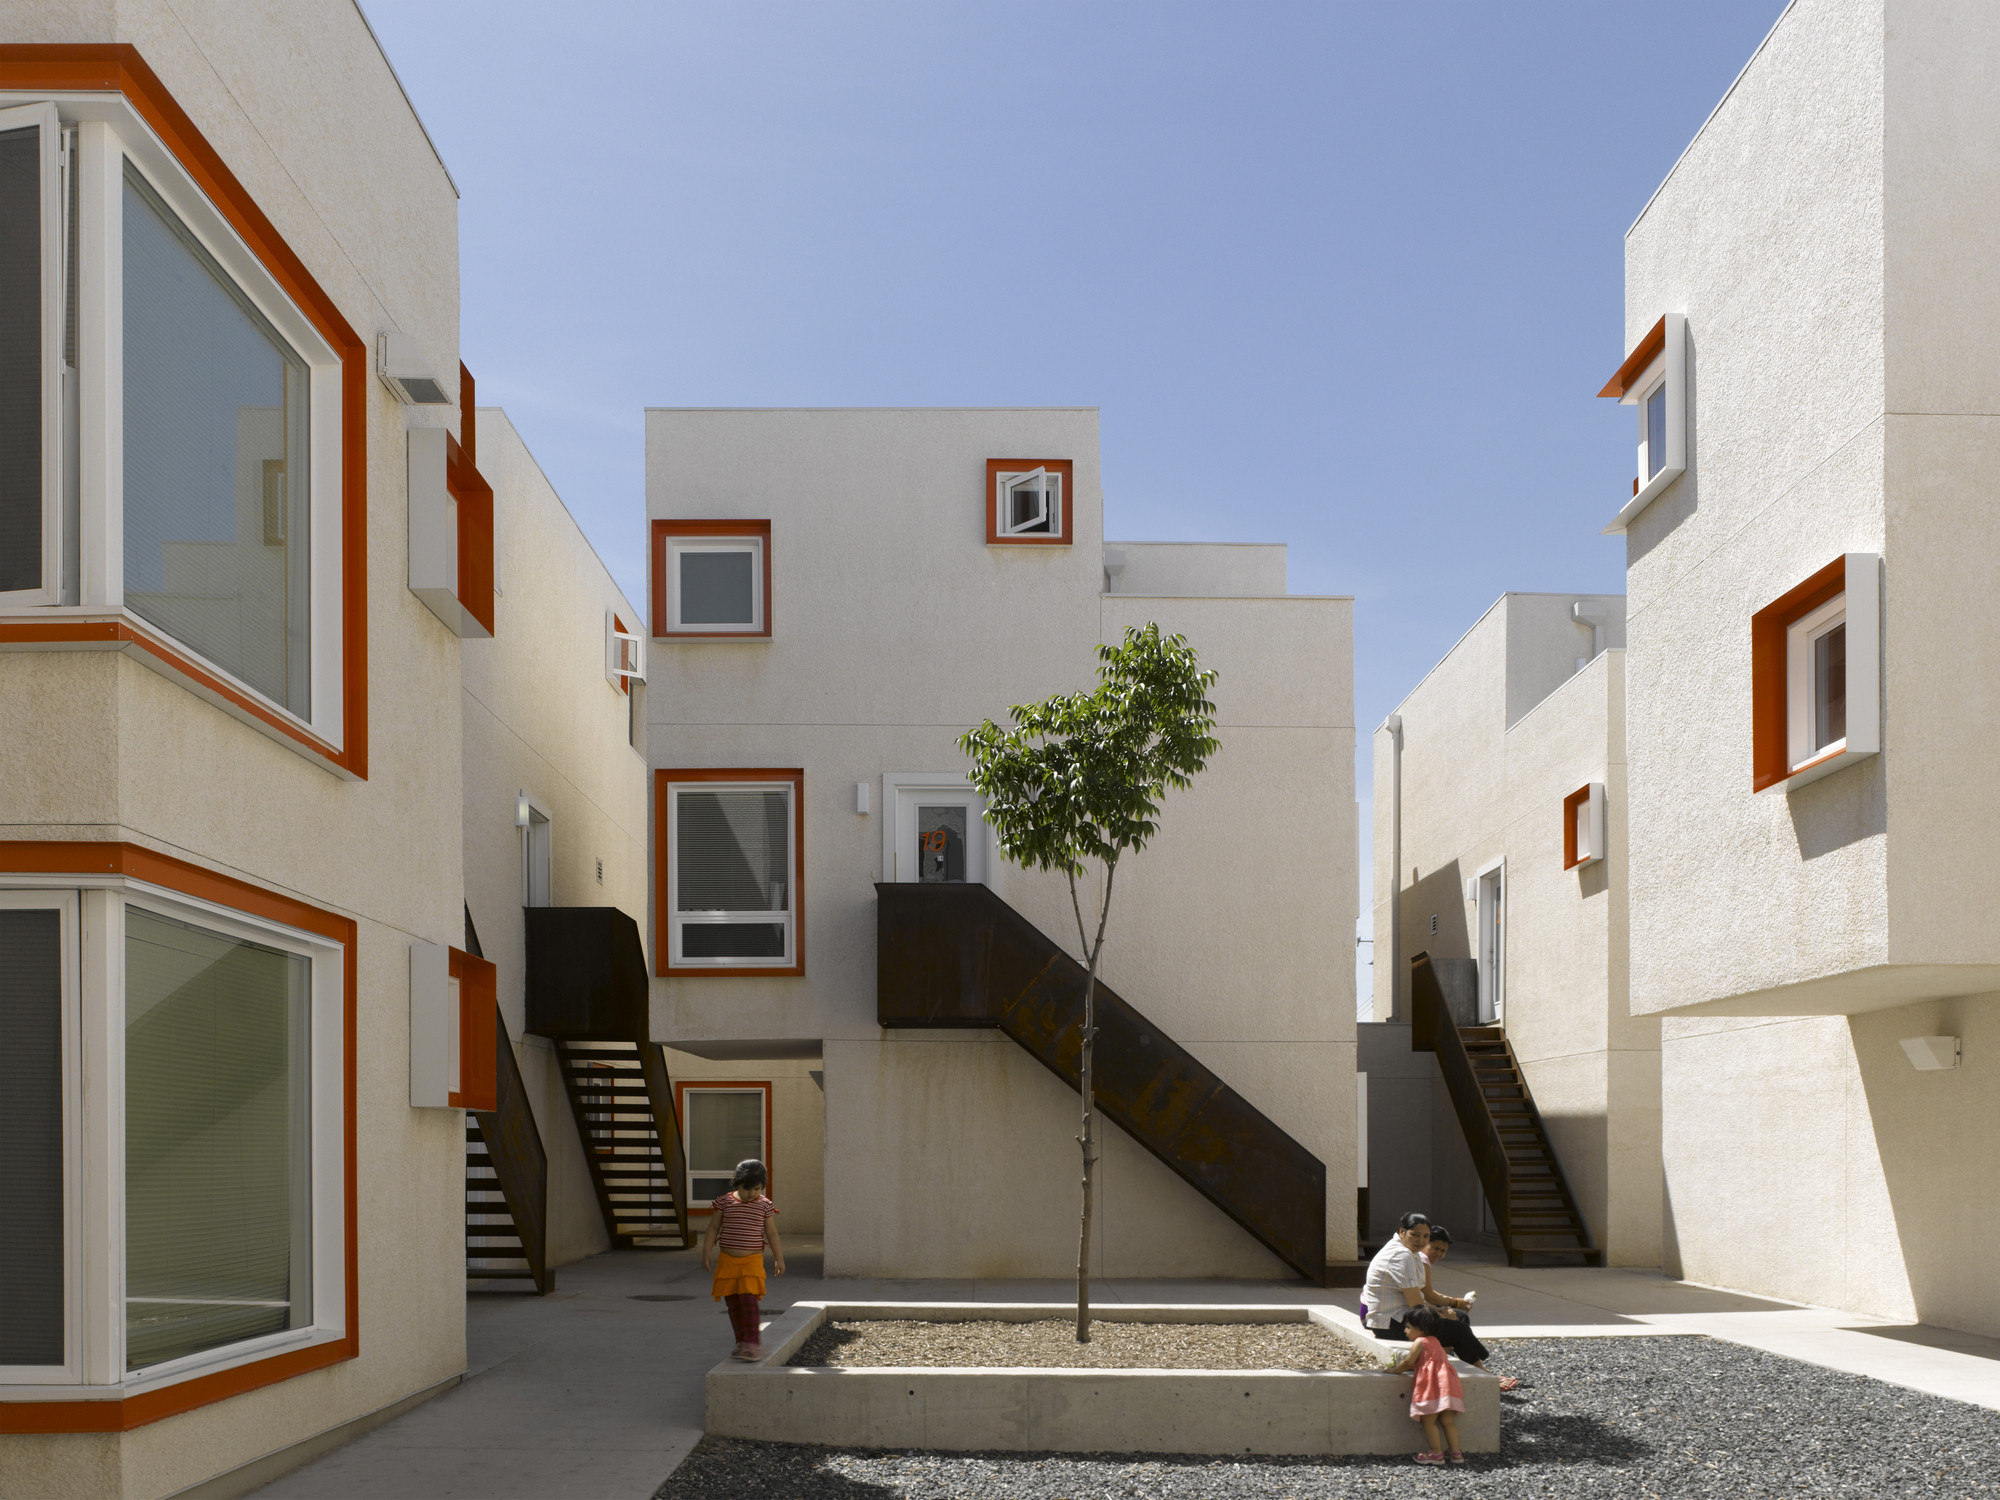 When designer social housing goes wrong the failures of for Architecture design for home in village